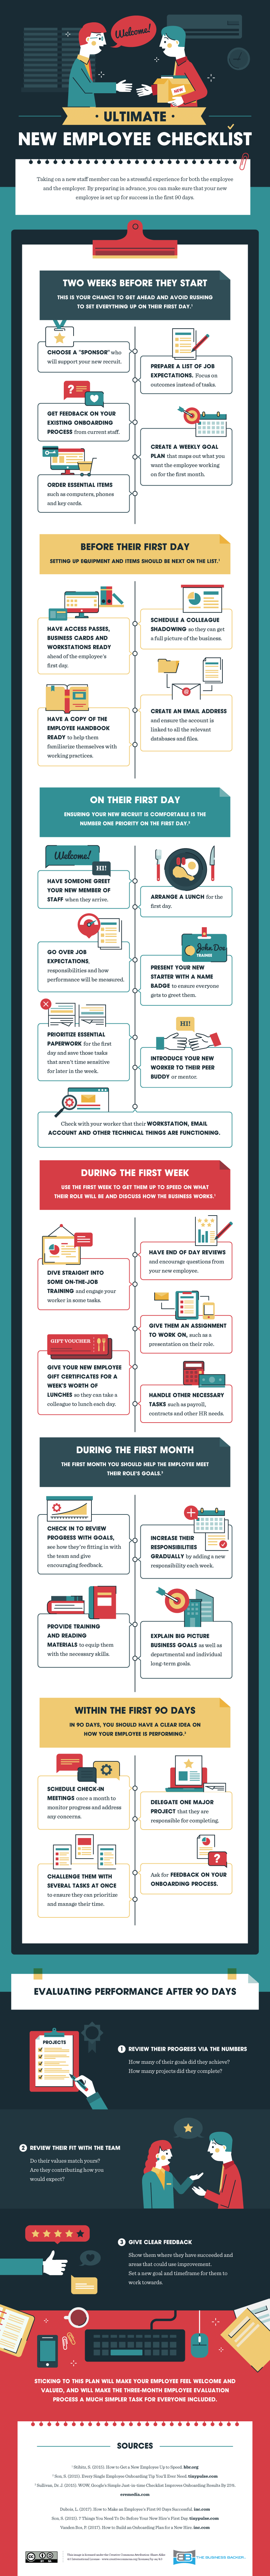 Ultimate New Employee Checklist (Infographic)